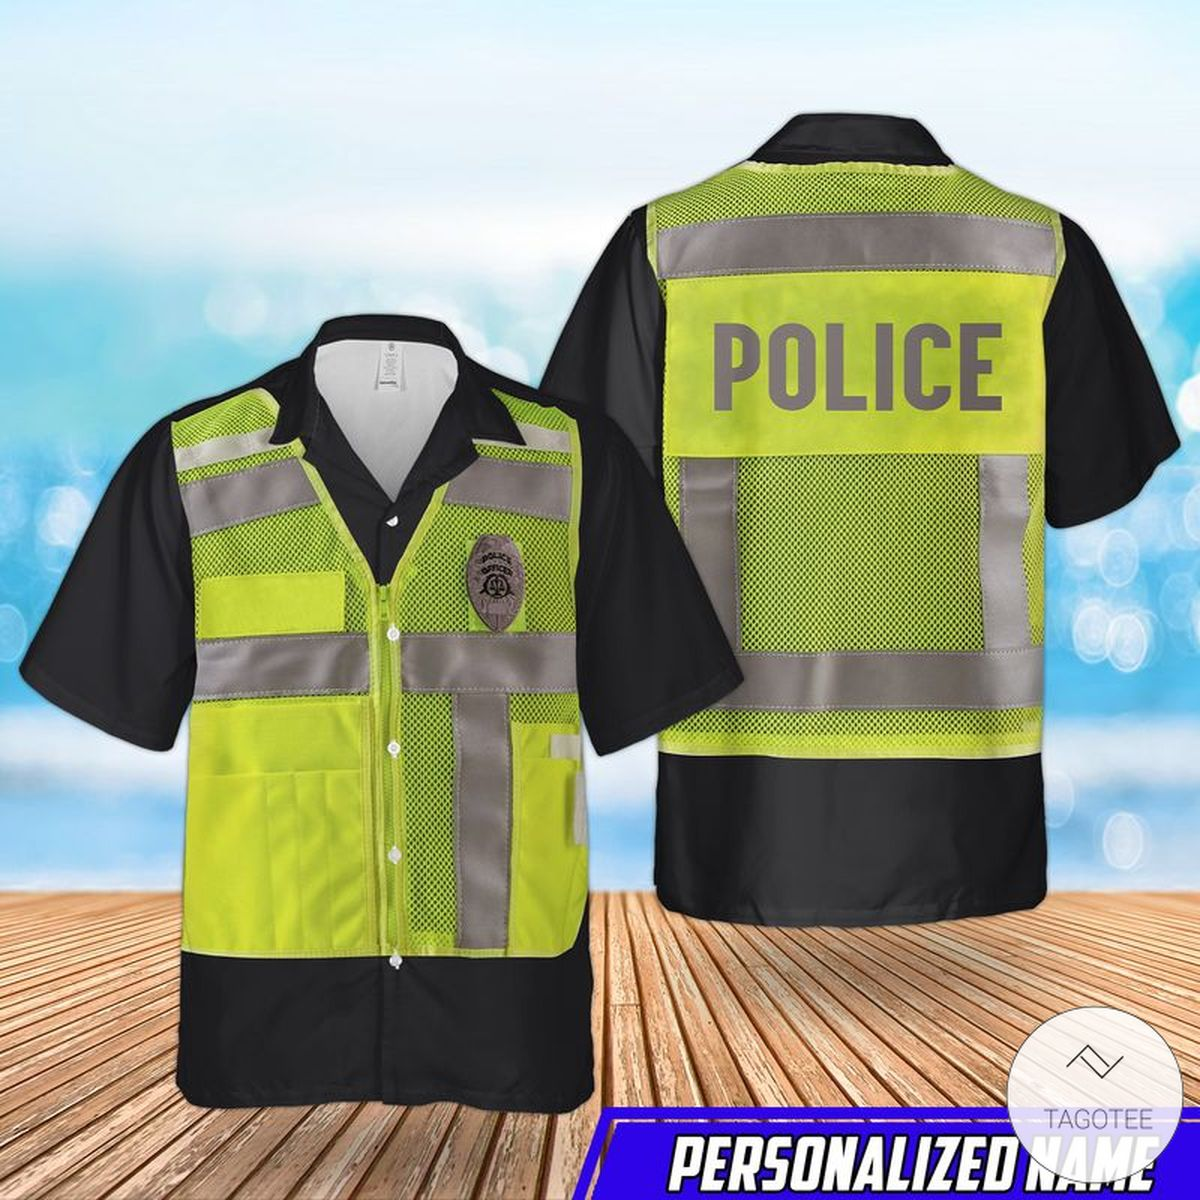 Personalized Us Police High Visibility Identification Vest Hawaiian Shirt